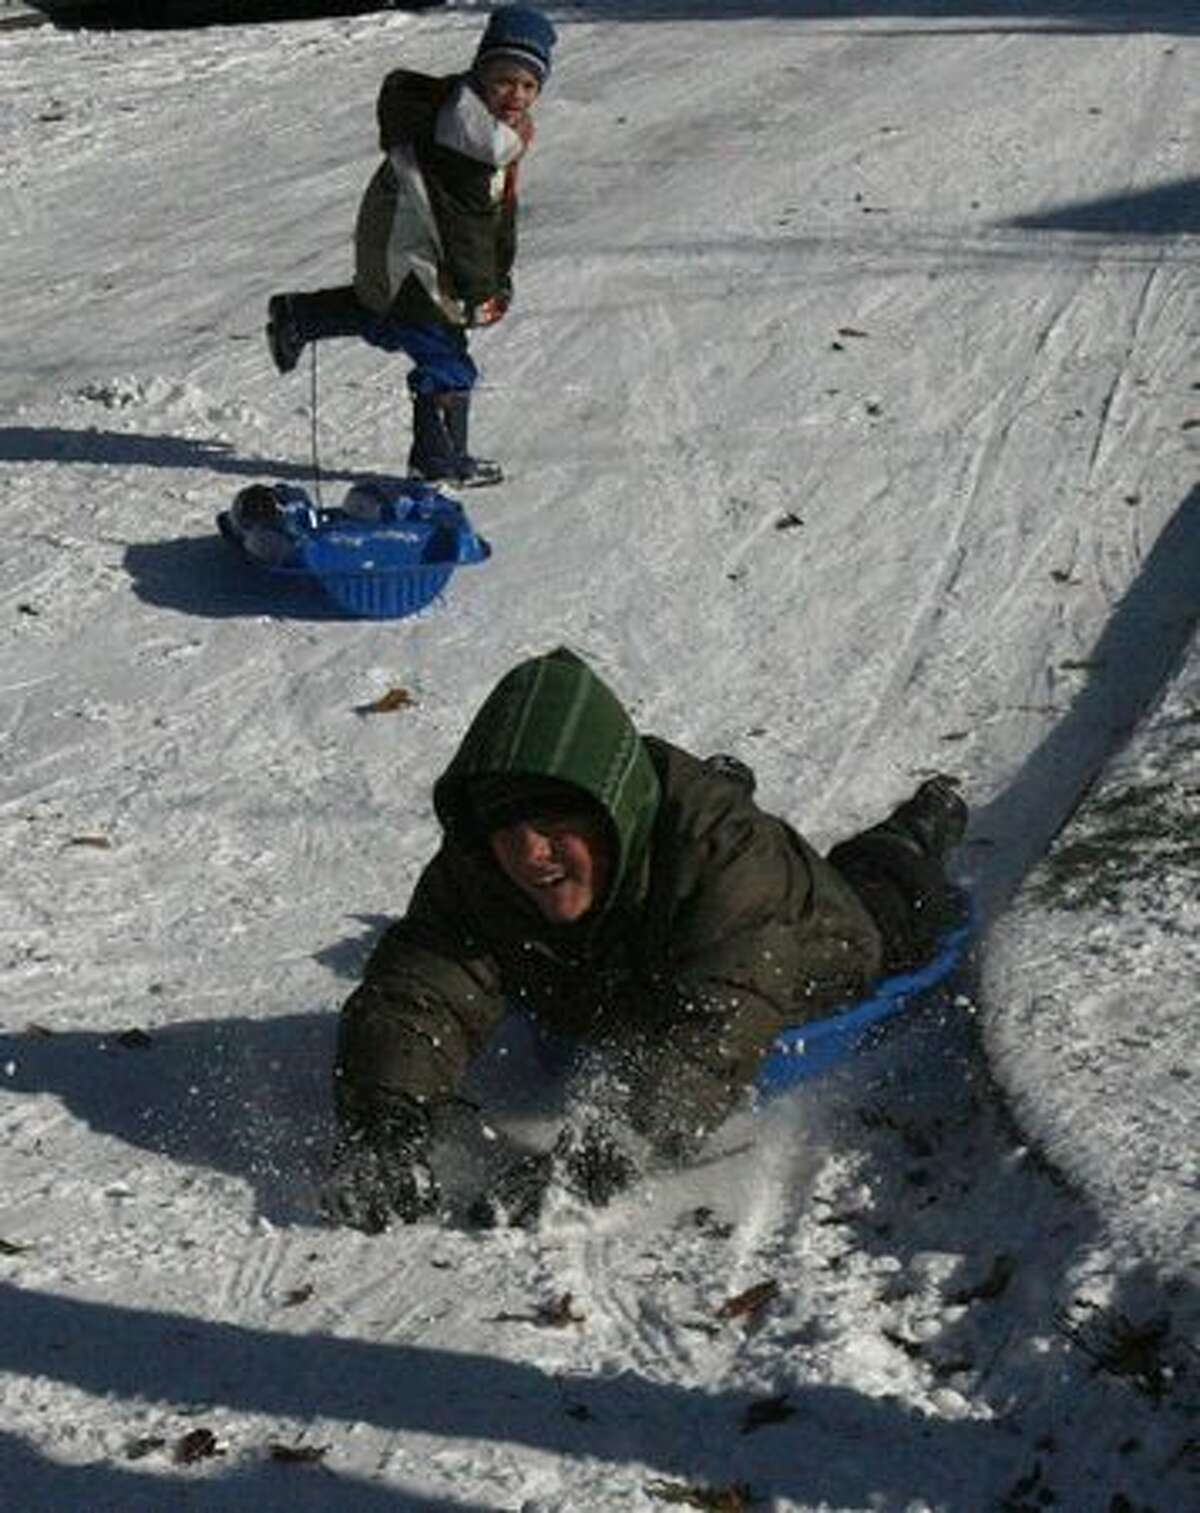 Truman Wisen, 8, finishes a sled run as brother Hamilton Wisen, 4, watches in Seattle's Ballard neighborhood on Tuesday.